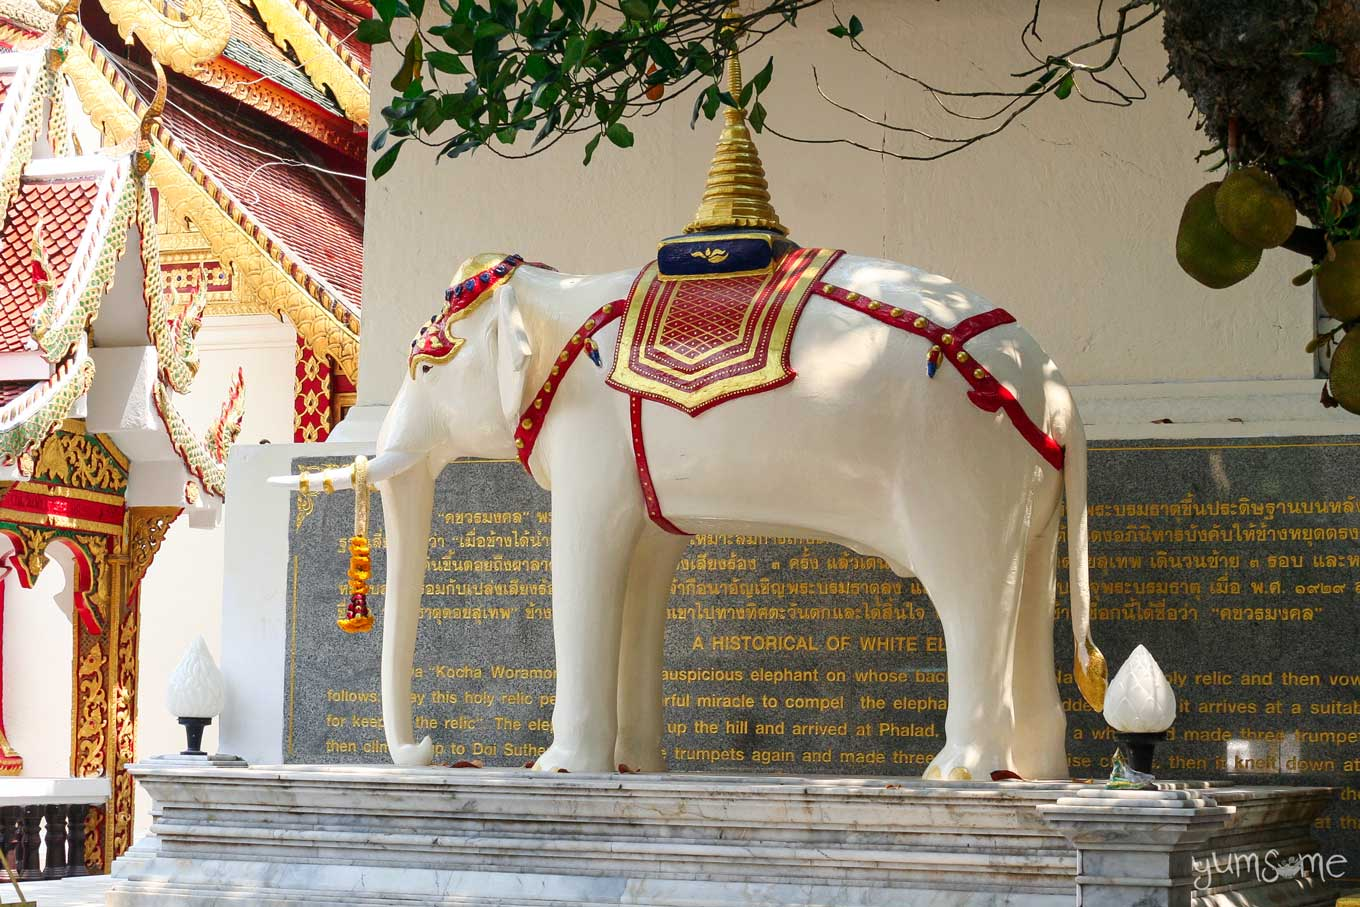 White elephant statue at Wat Phra That Doi Suthep, with a reliquary on its back.